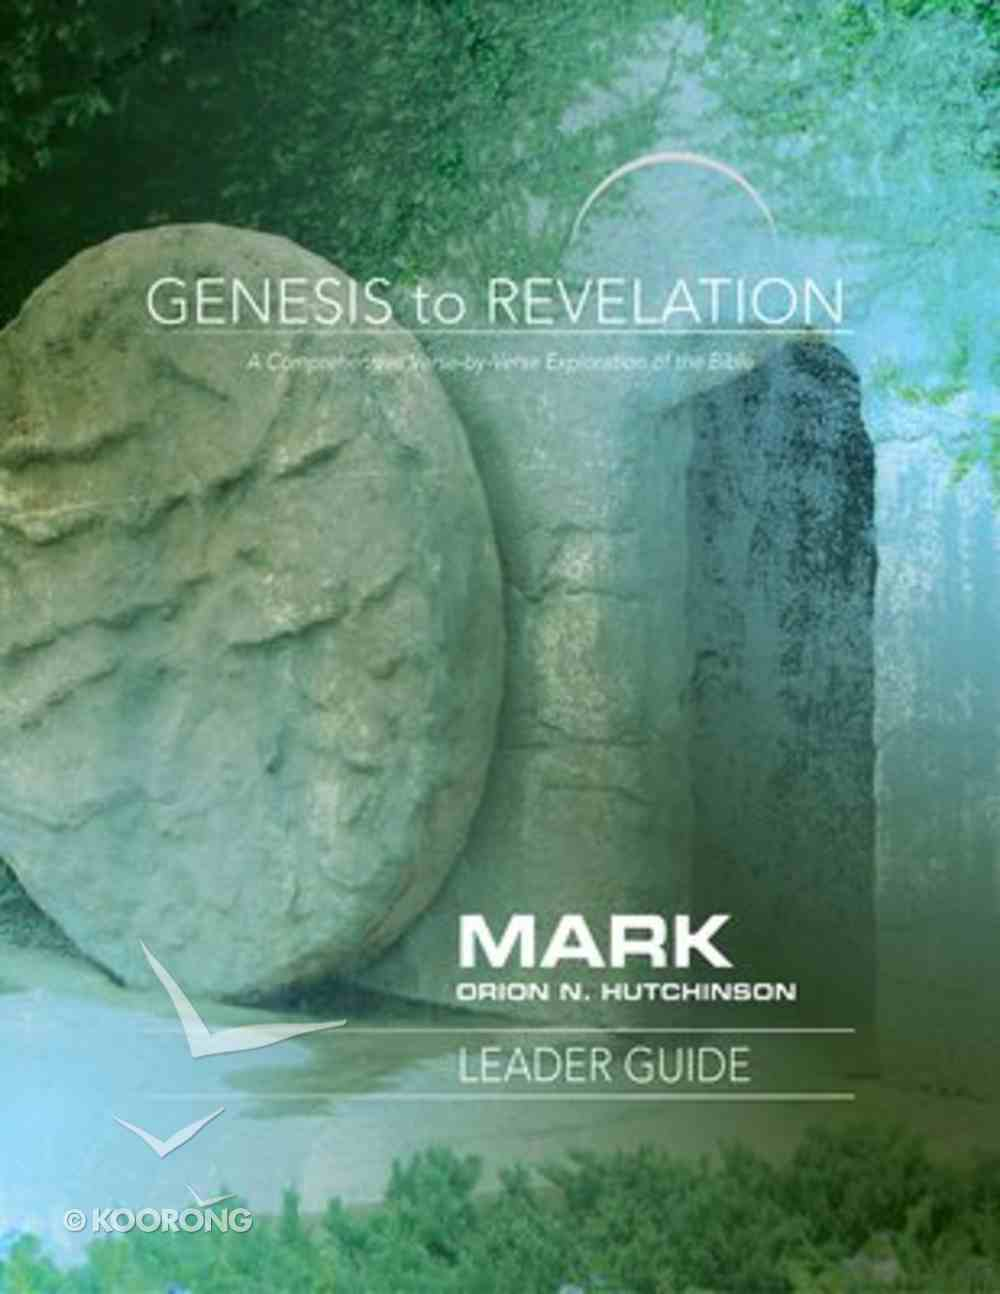 Mark : A Comprehensive Verse-By-Verse Exploration of the Bible (Leader Guide) (Genesis To Revelation Series) Paperback